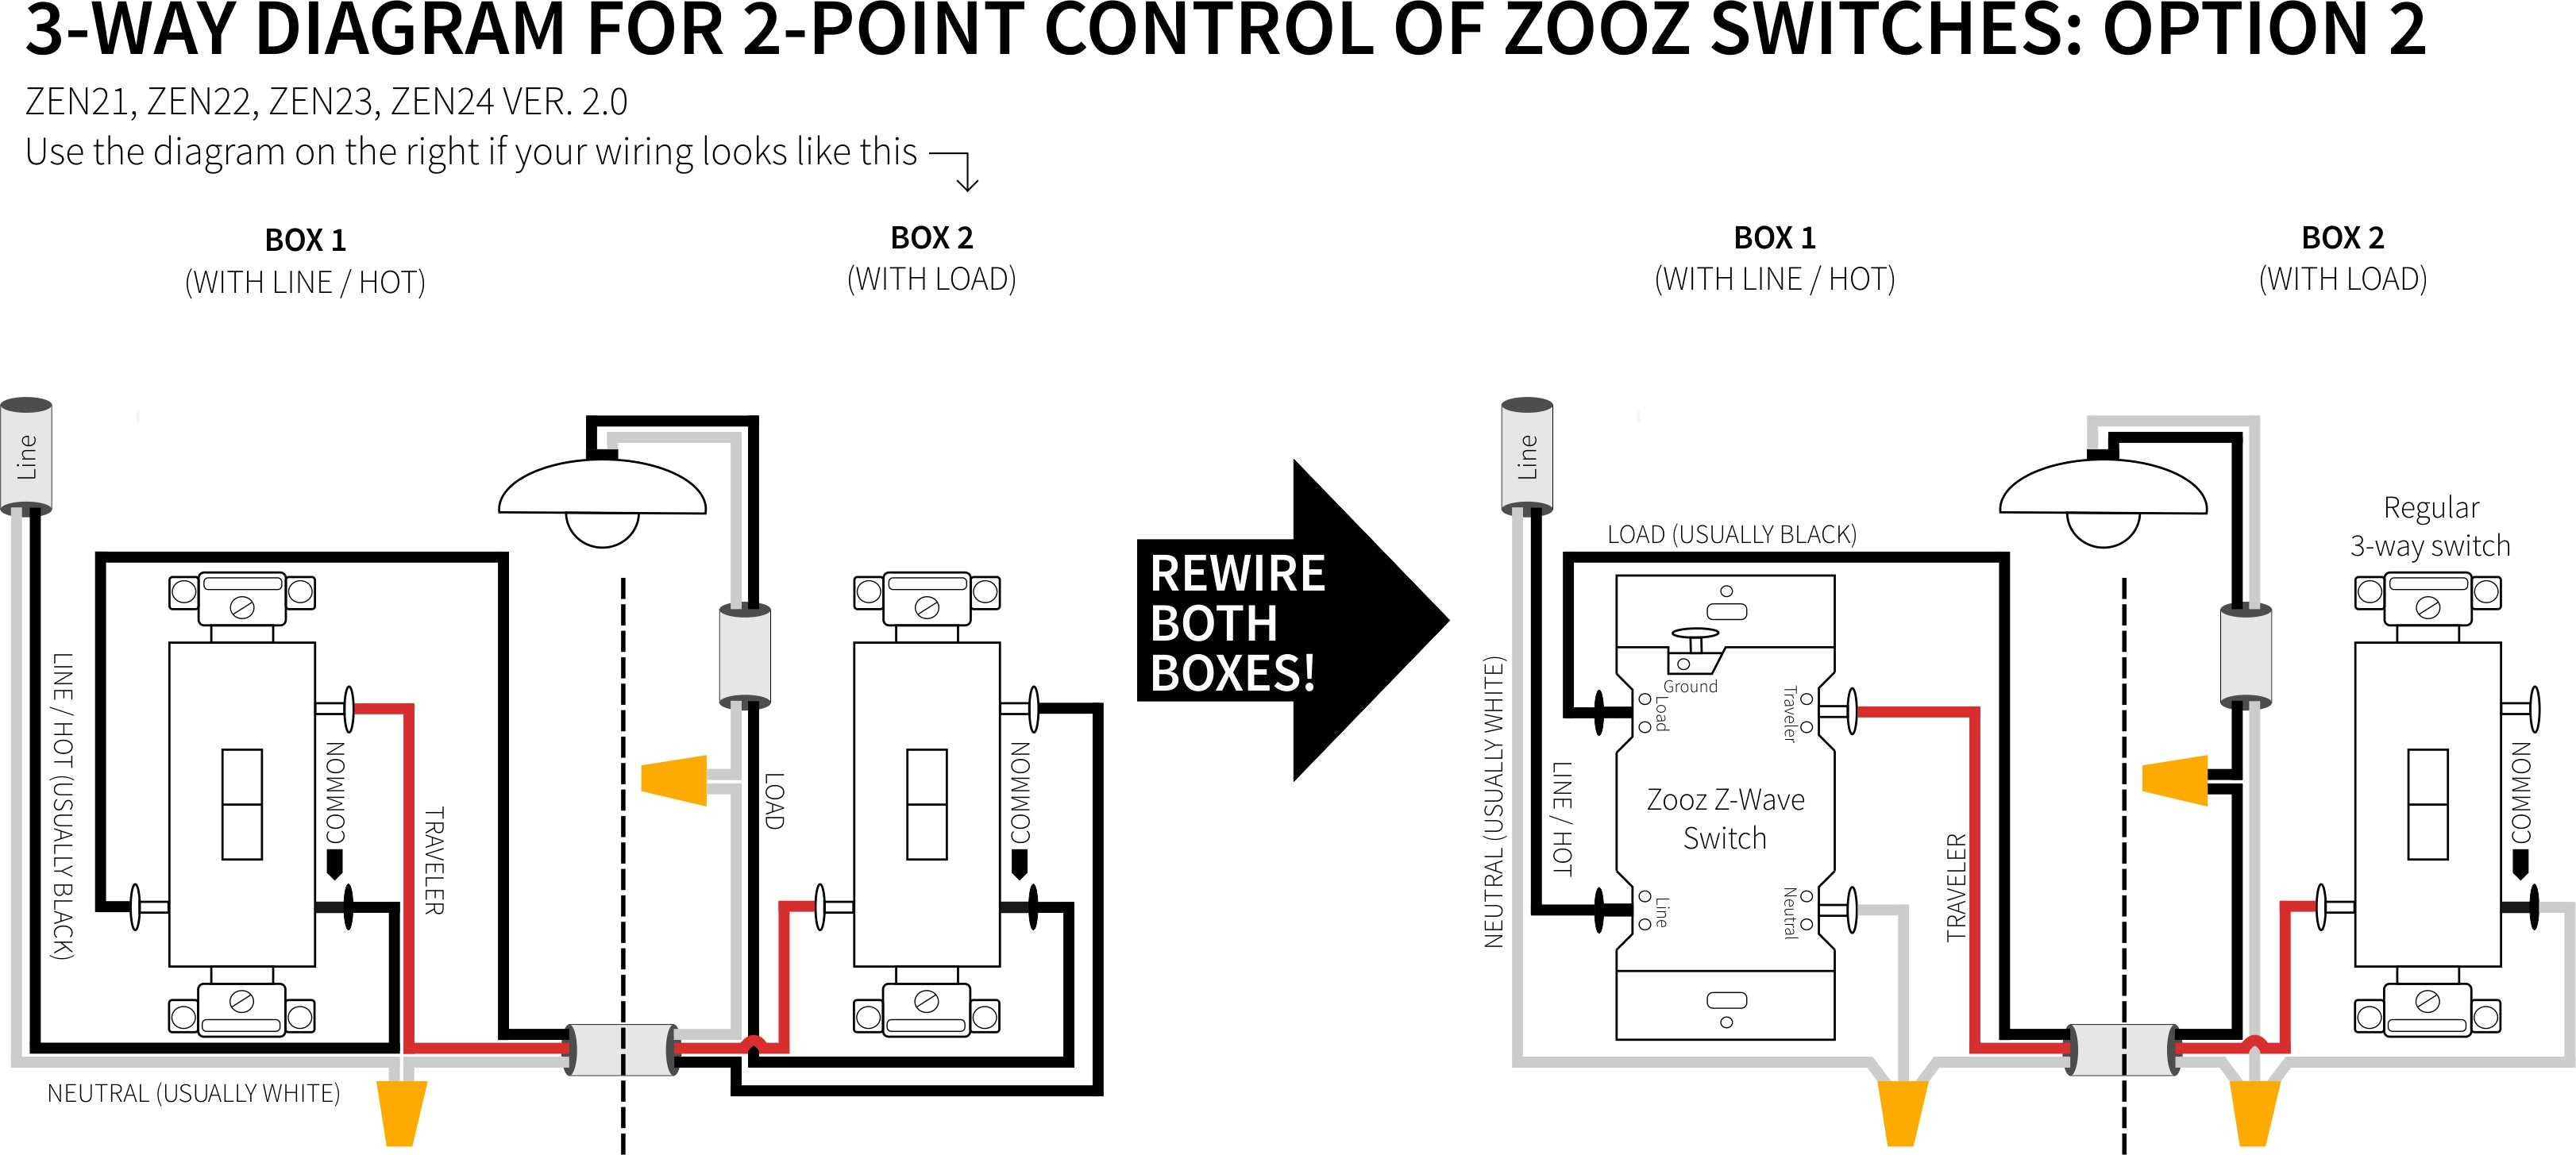 Zooz Z Wave Plus On Off Light Switch Zen21 Ver 4 0 The Smartest House